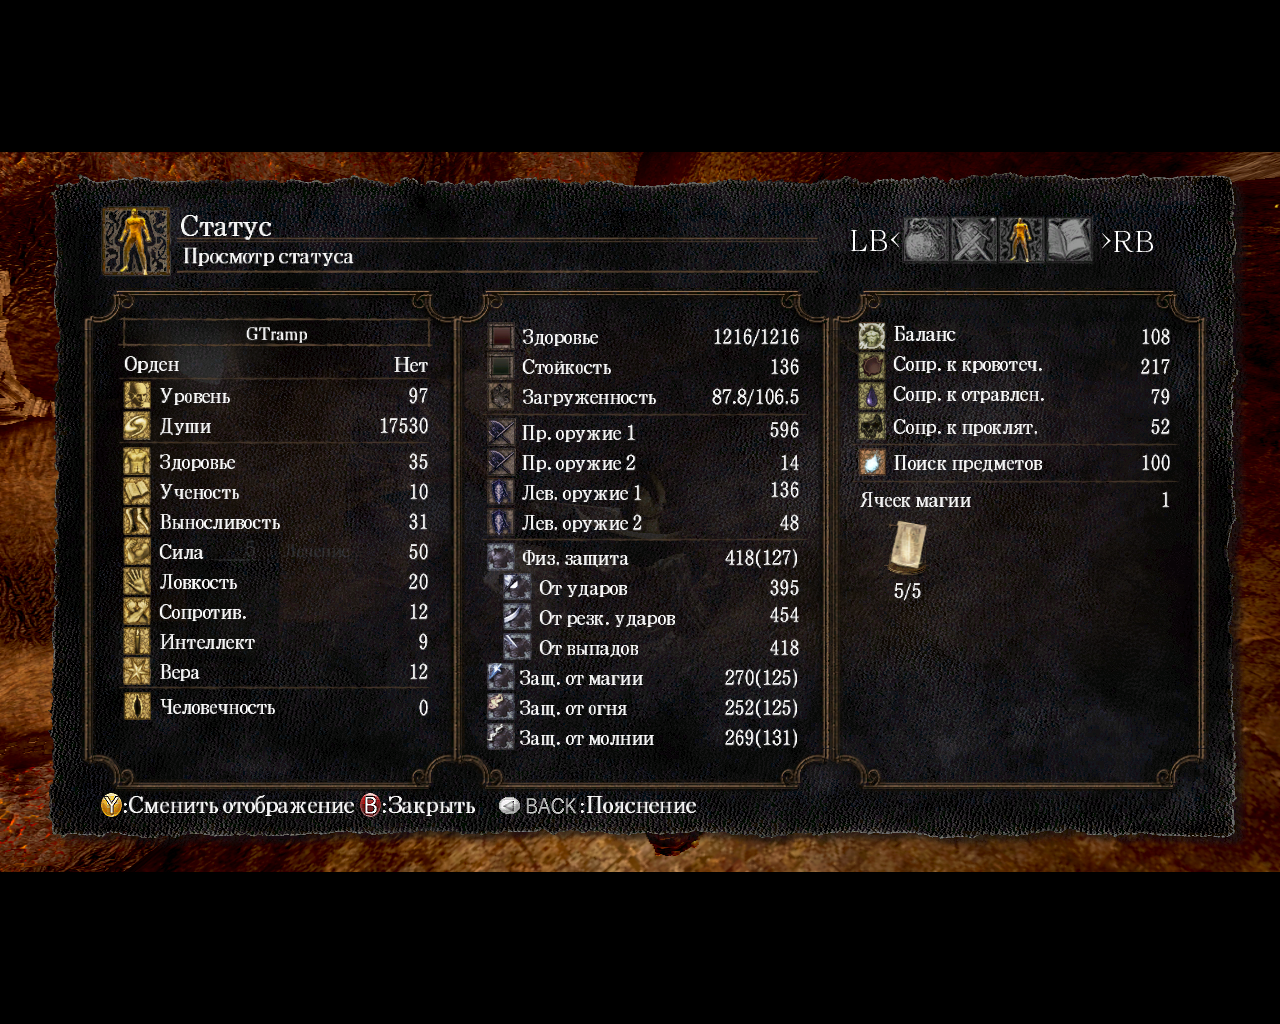 Dark Souls: Prepare to Die Edition Windows Status screen showing my offensive and defensive parameters in details